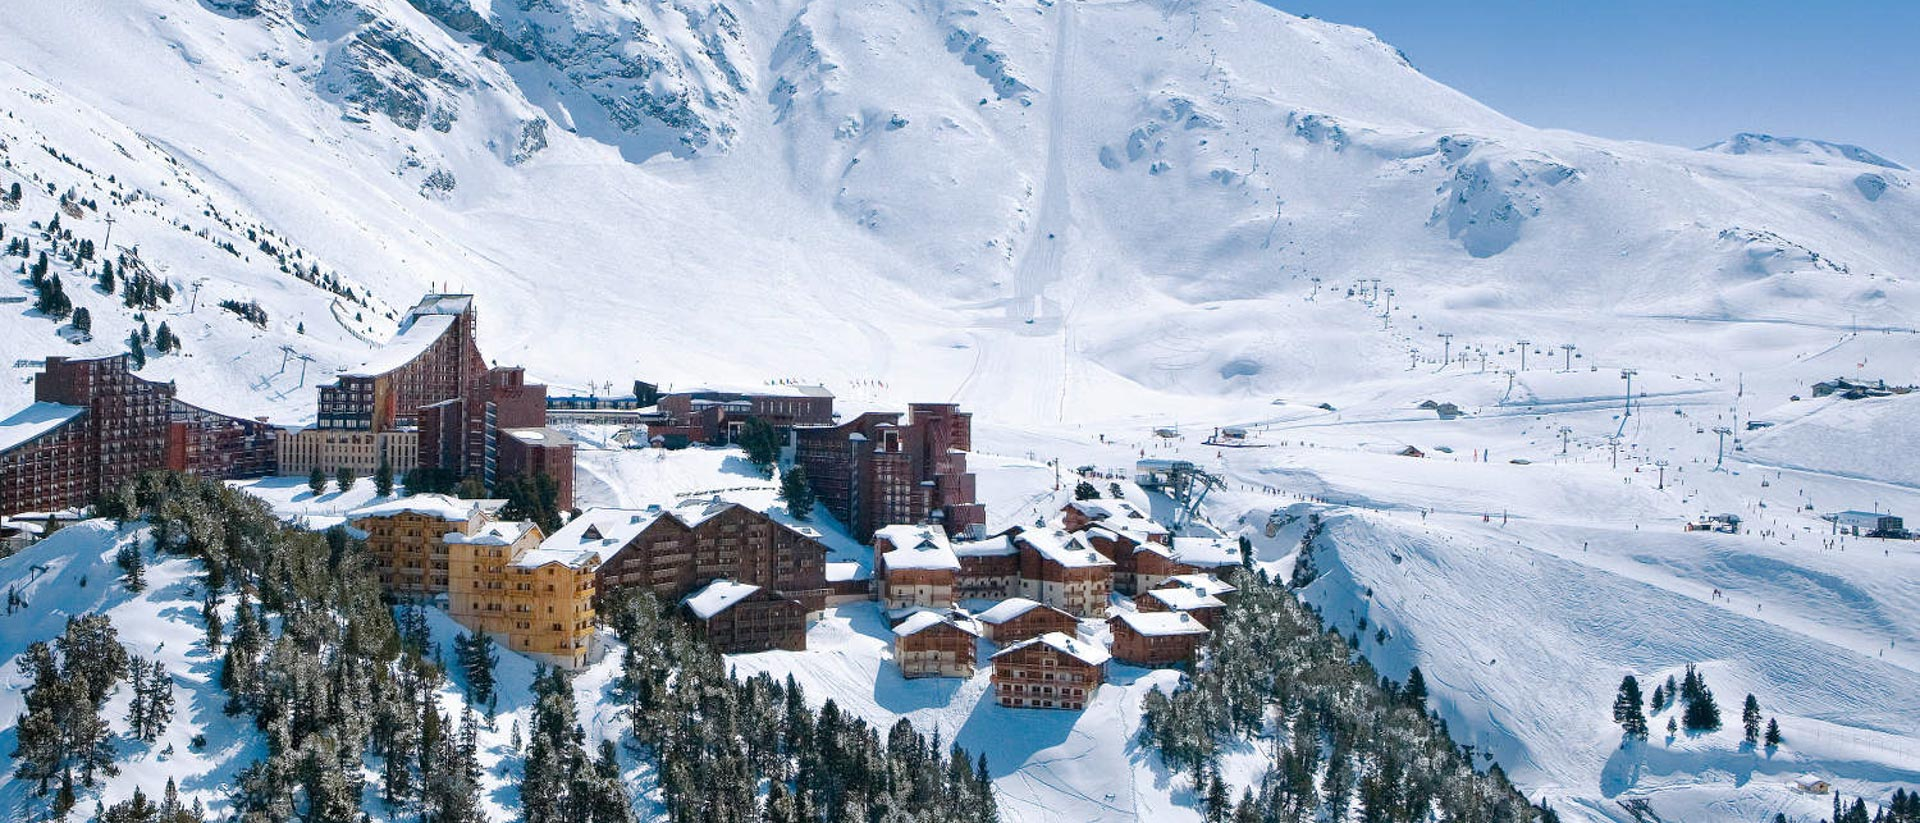 The village of Les Arcs overlooking the ski runs and chairlifts on the mountains